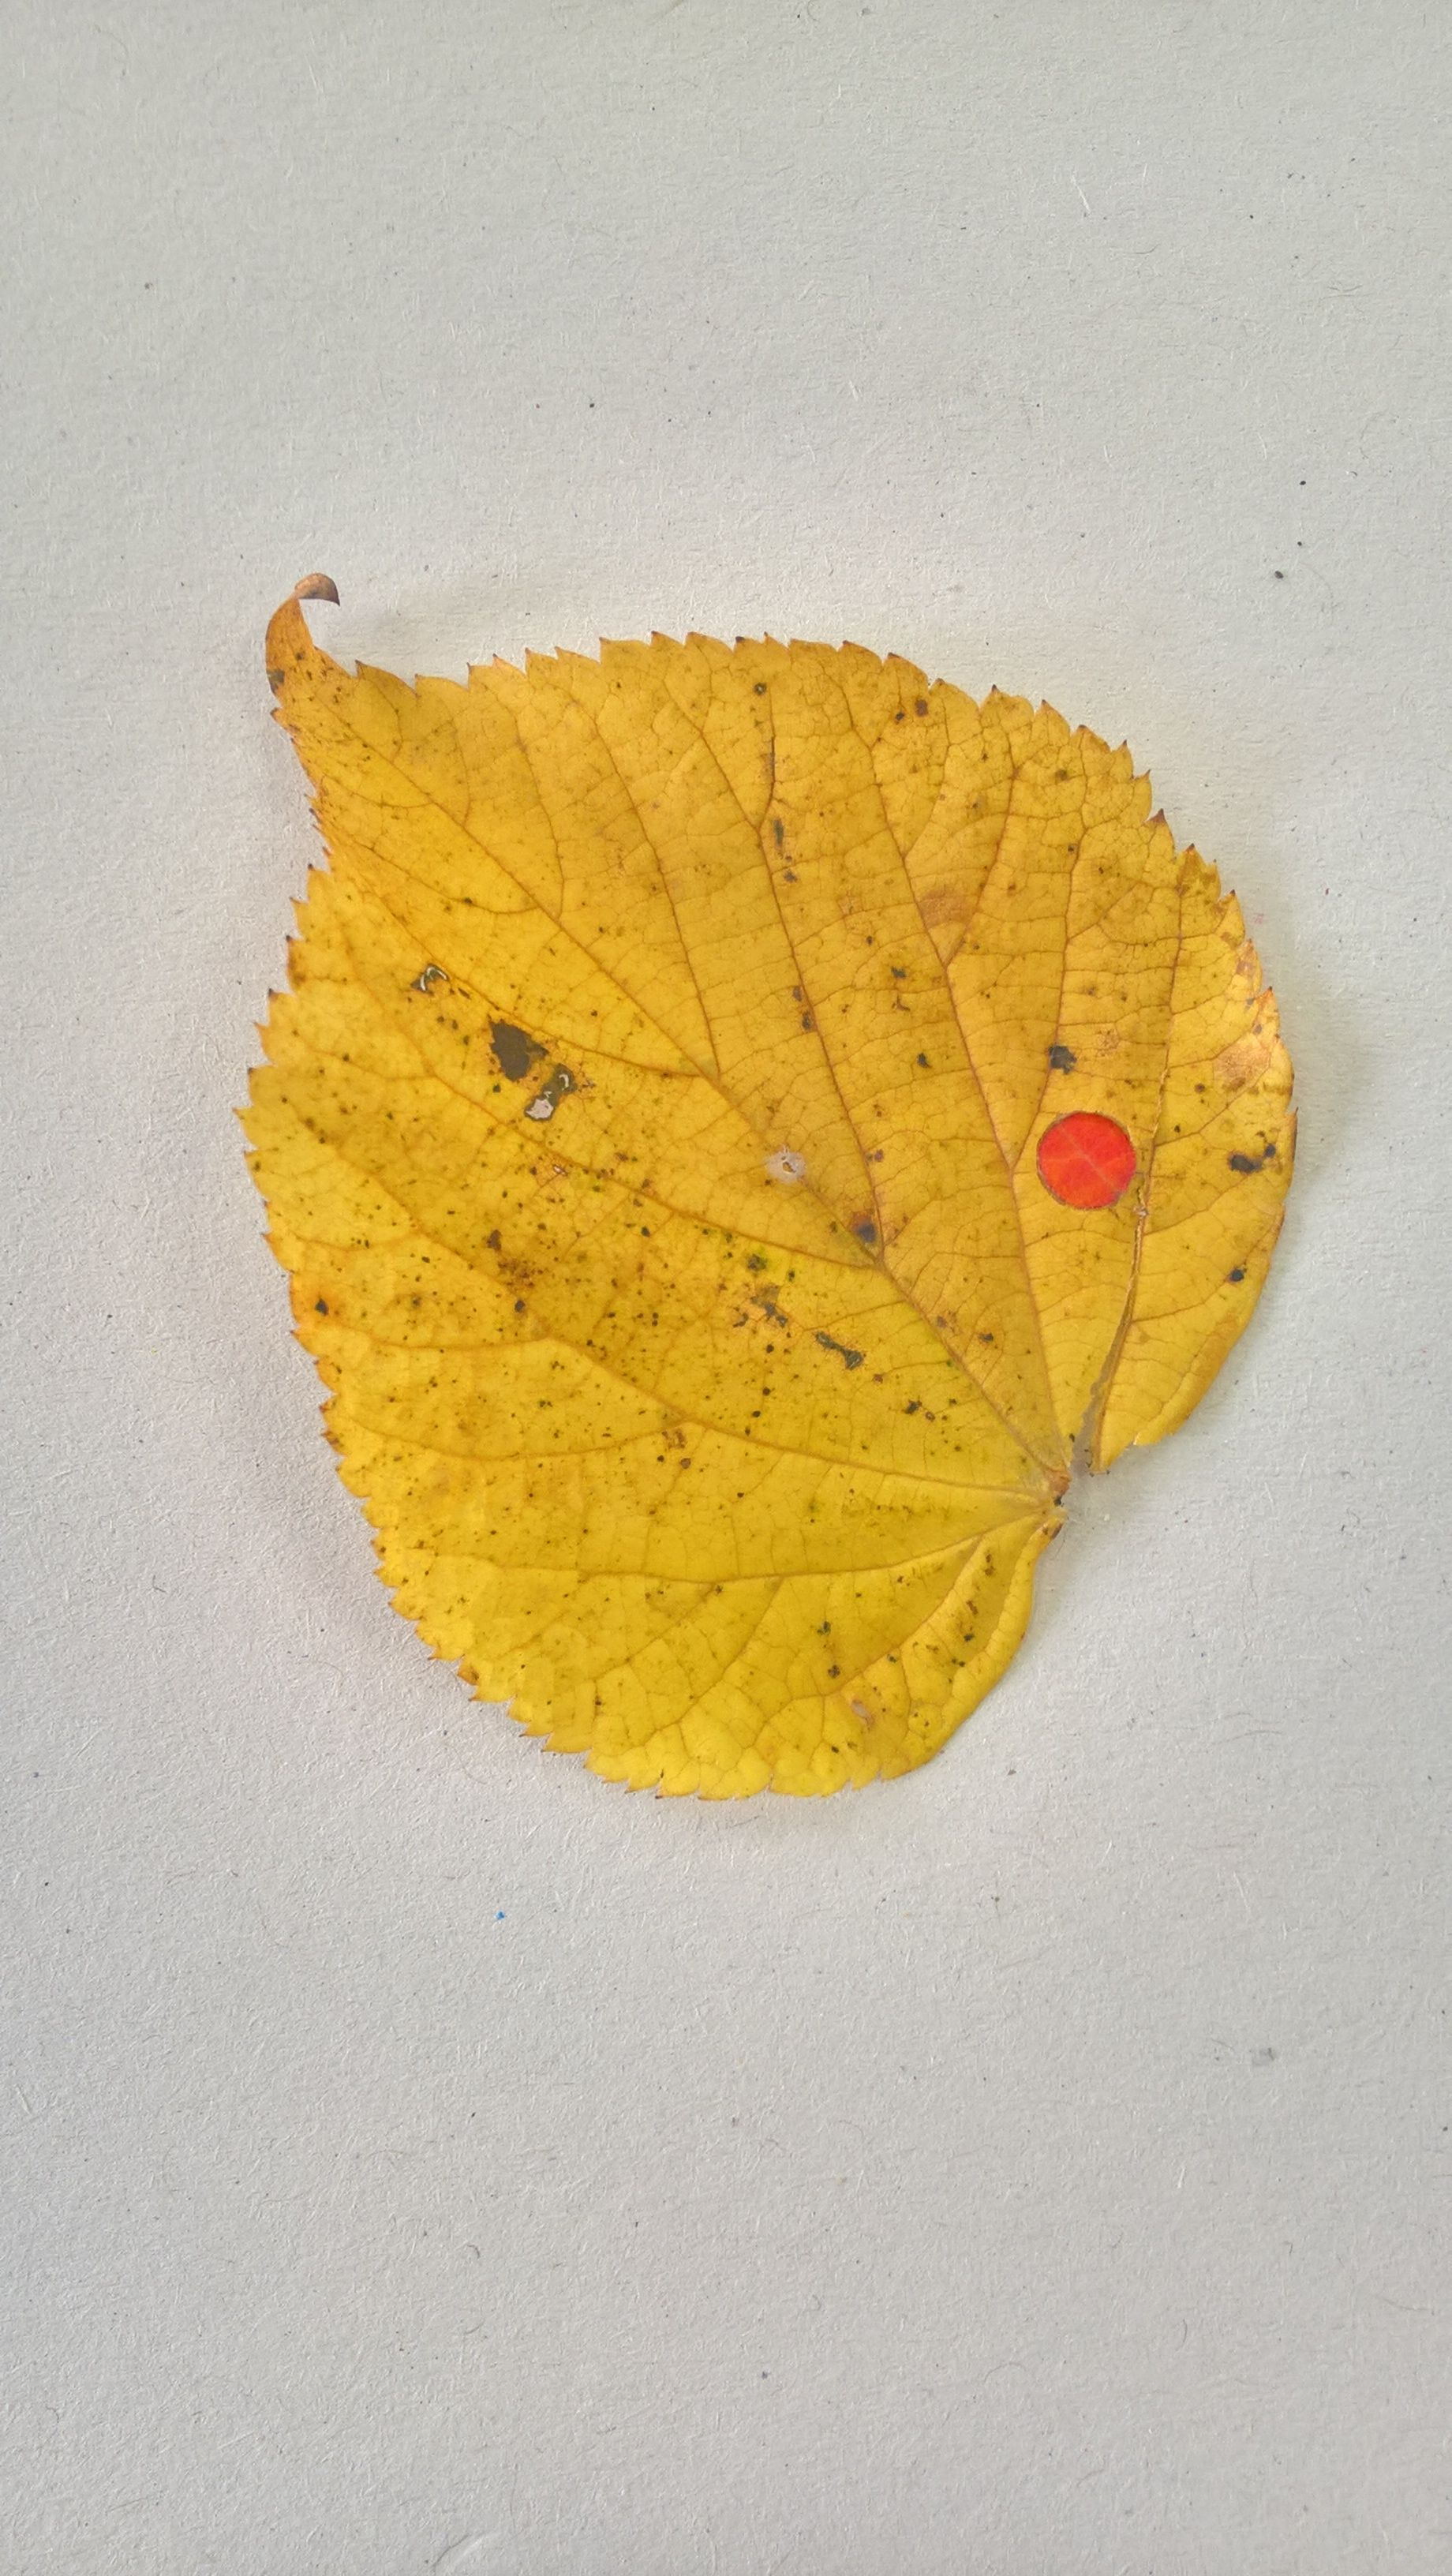 Yellow Leaf Single Red Dot